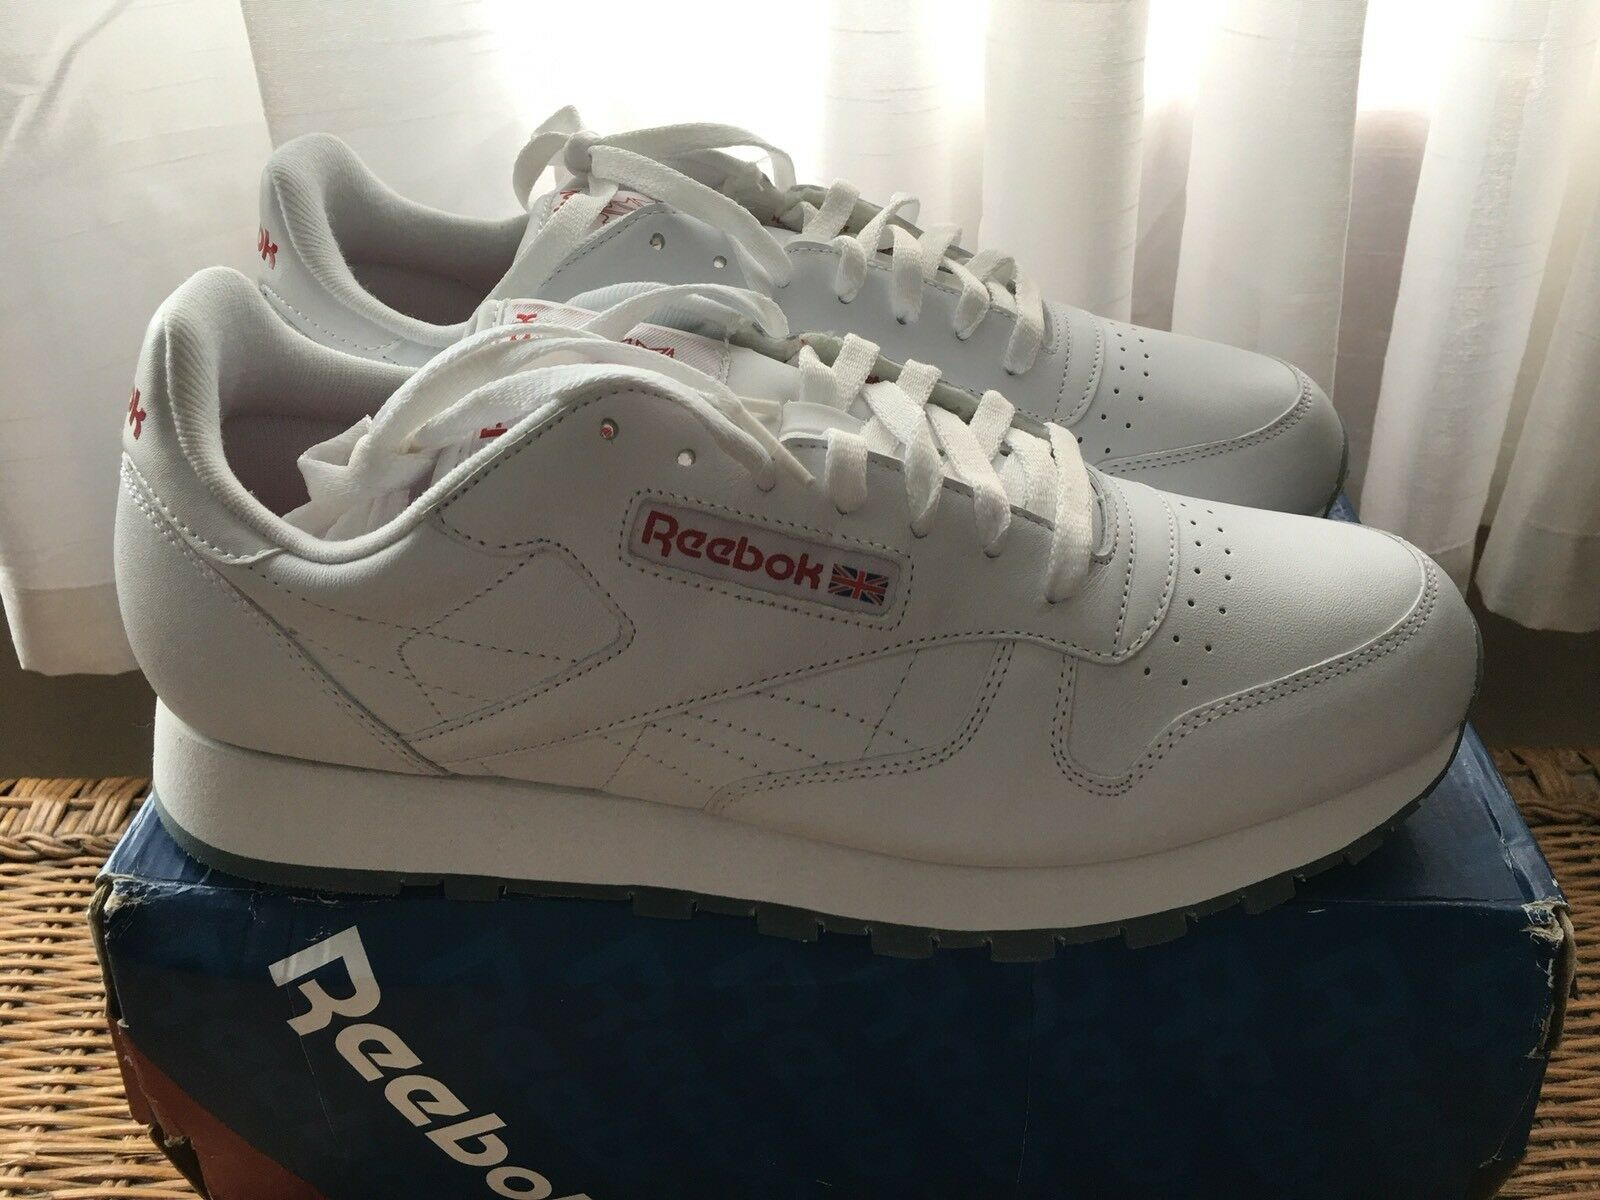 Uomo Reebok Classic Pelle Ice White/Red Clear Sole Size 11.5  New In Box